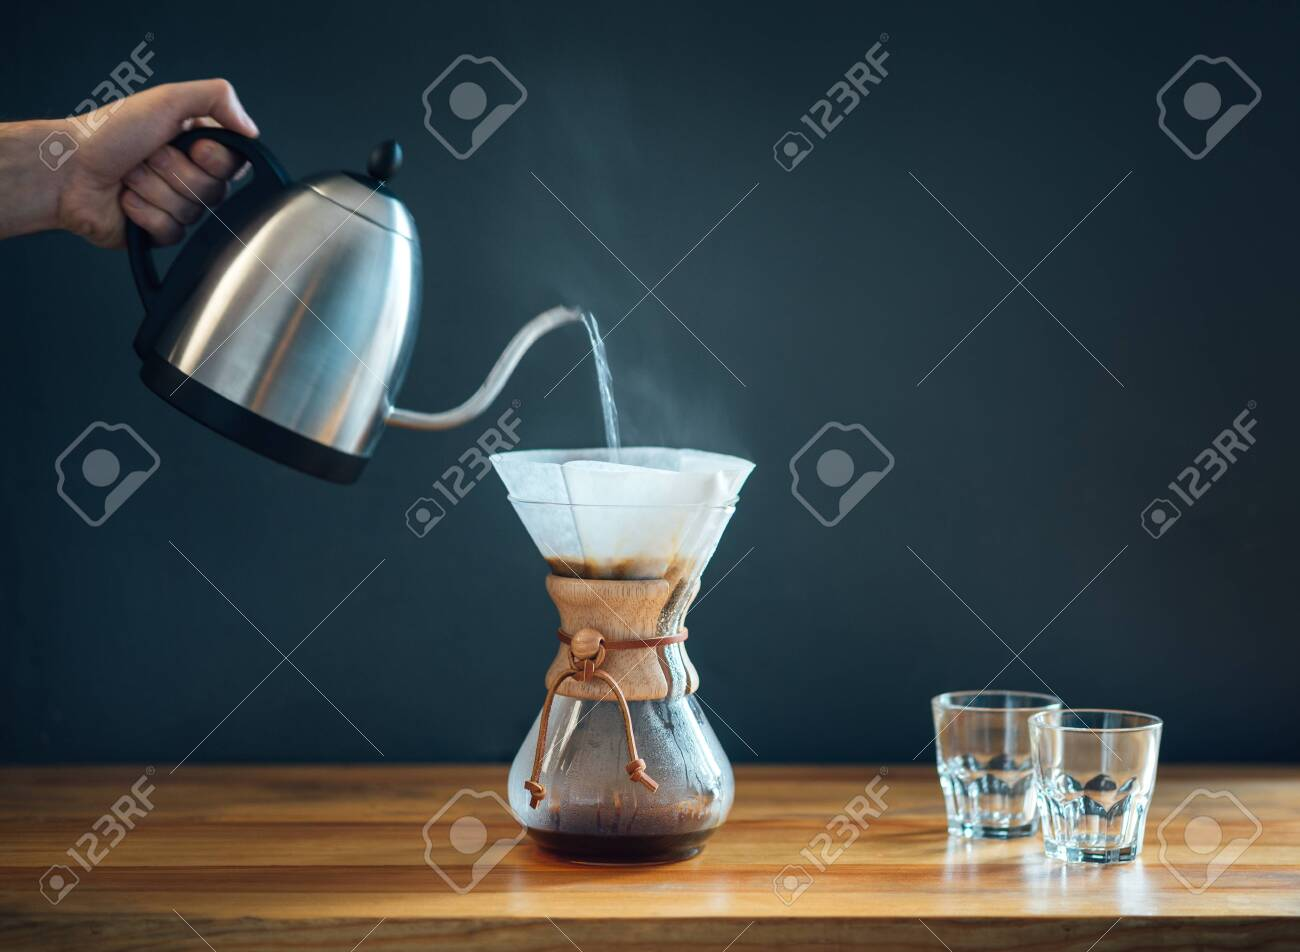 making coffee by an alternative method, pouring hot water from kettle into a glass decanter on a wooden table and gray background, minimalism side-view - 135265265